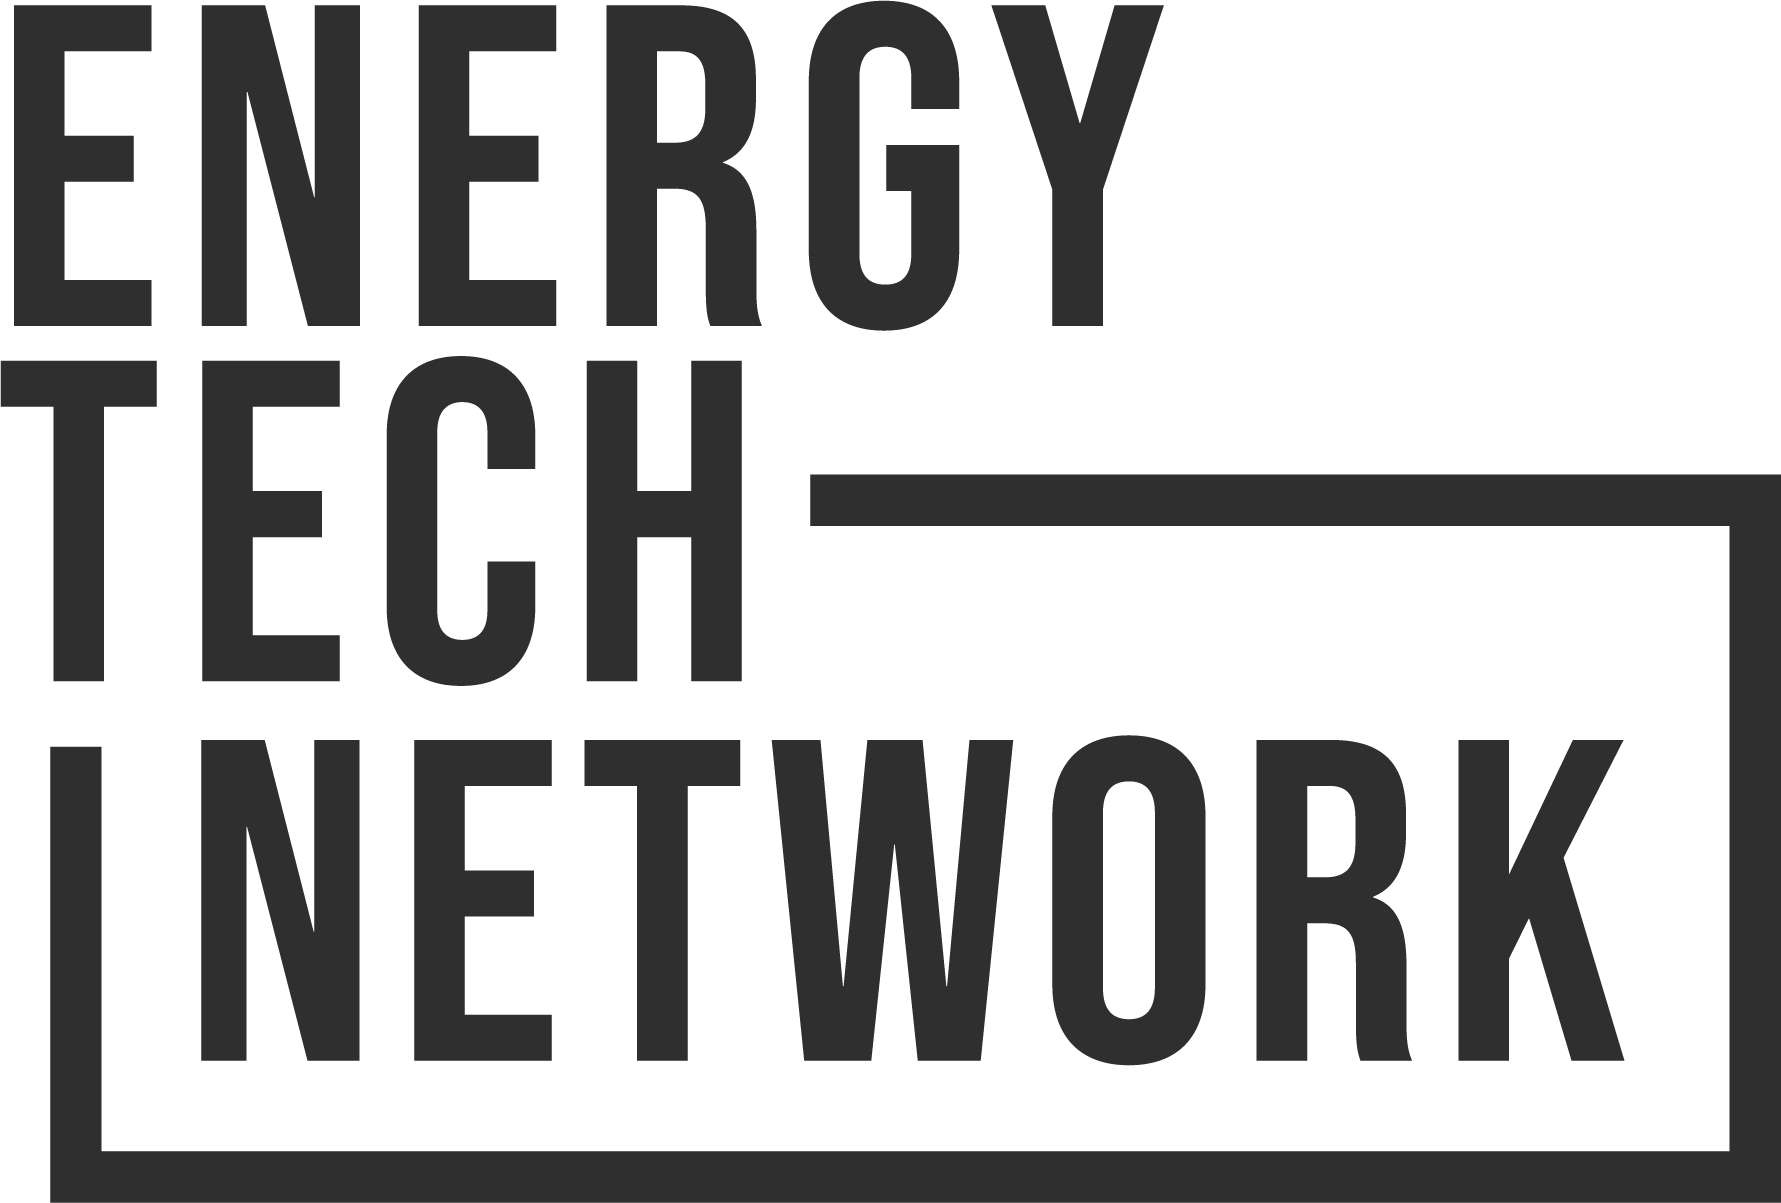 Energy Tech Network